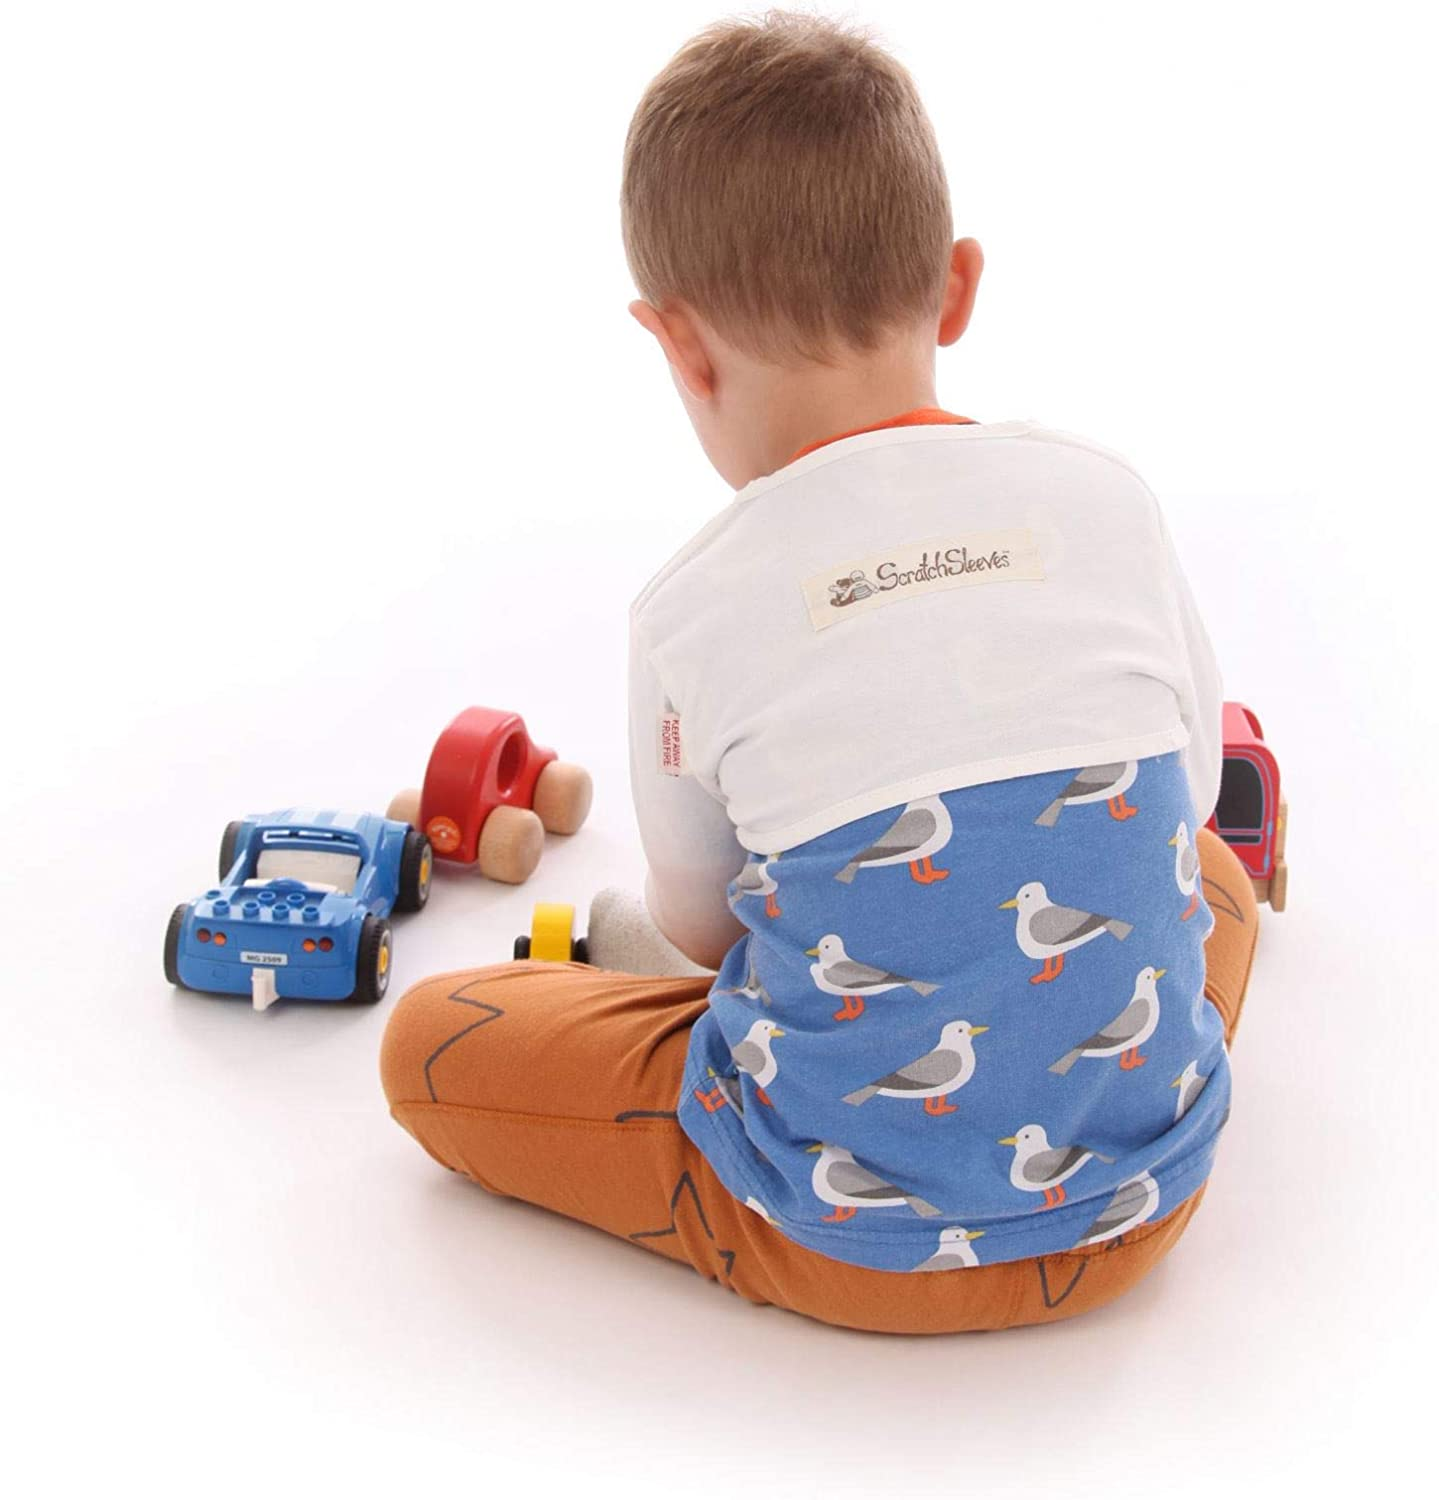 Stay-on Scratch Mitts for Itchy Toddlers /& Pre-School Children ScratchSleeves SuperSensitive